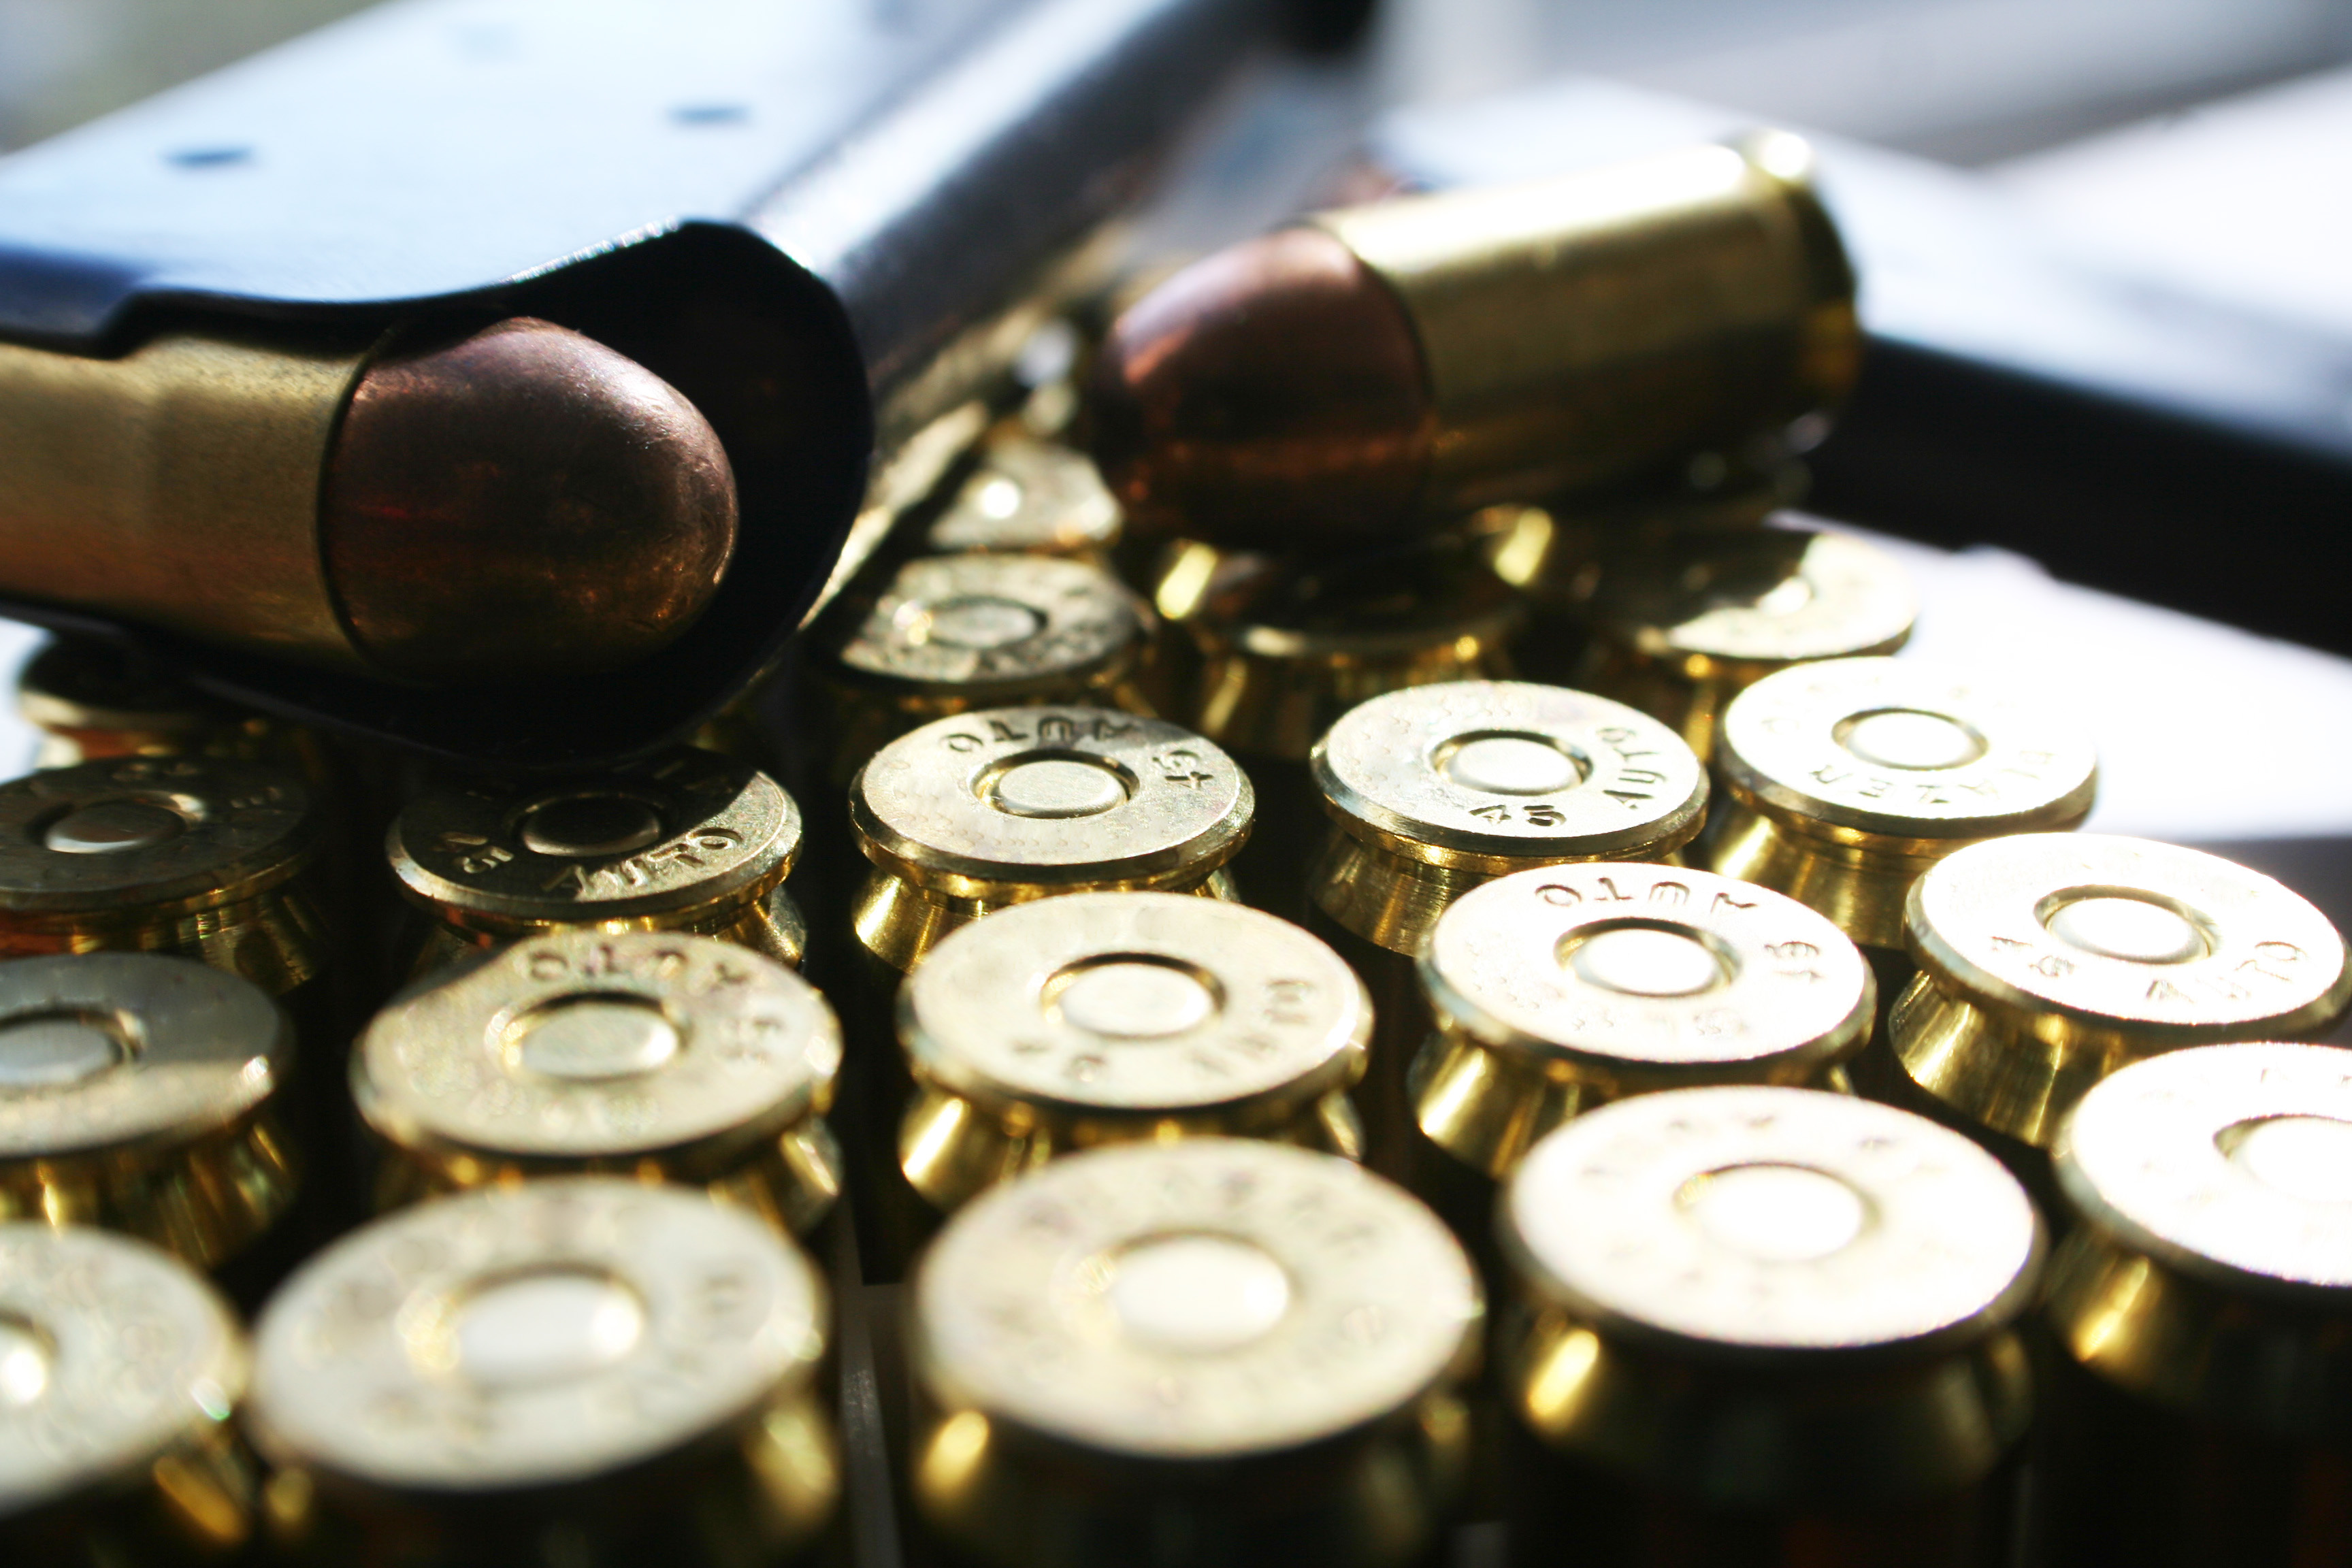 Bullets .45 ACP Stock Photo High Quality